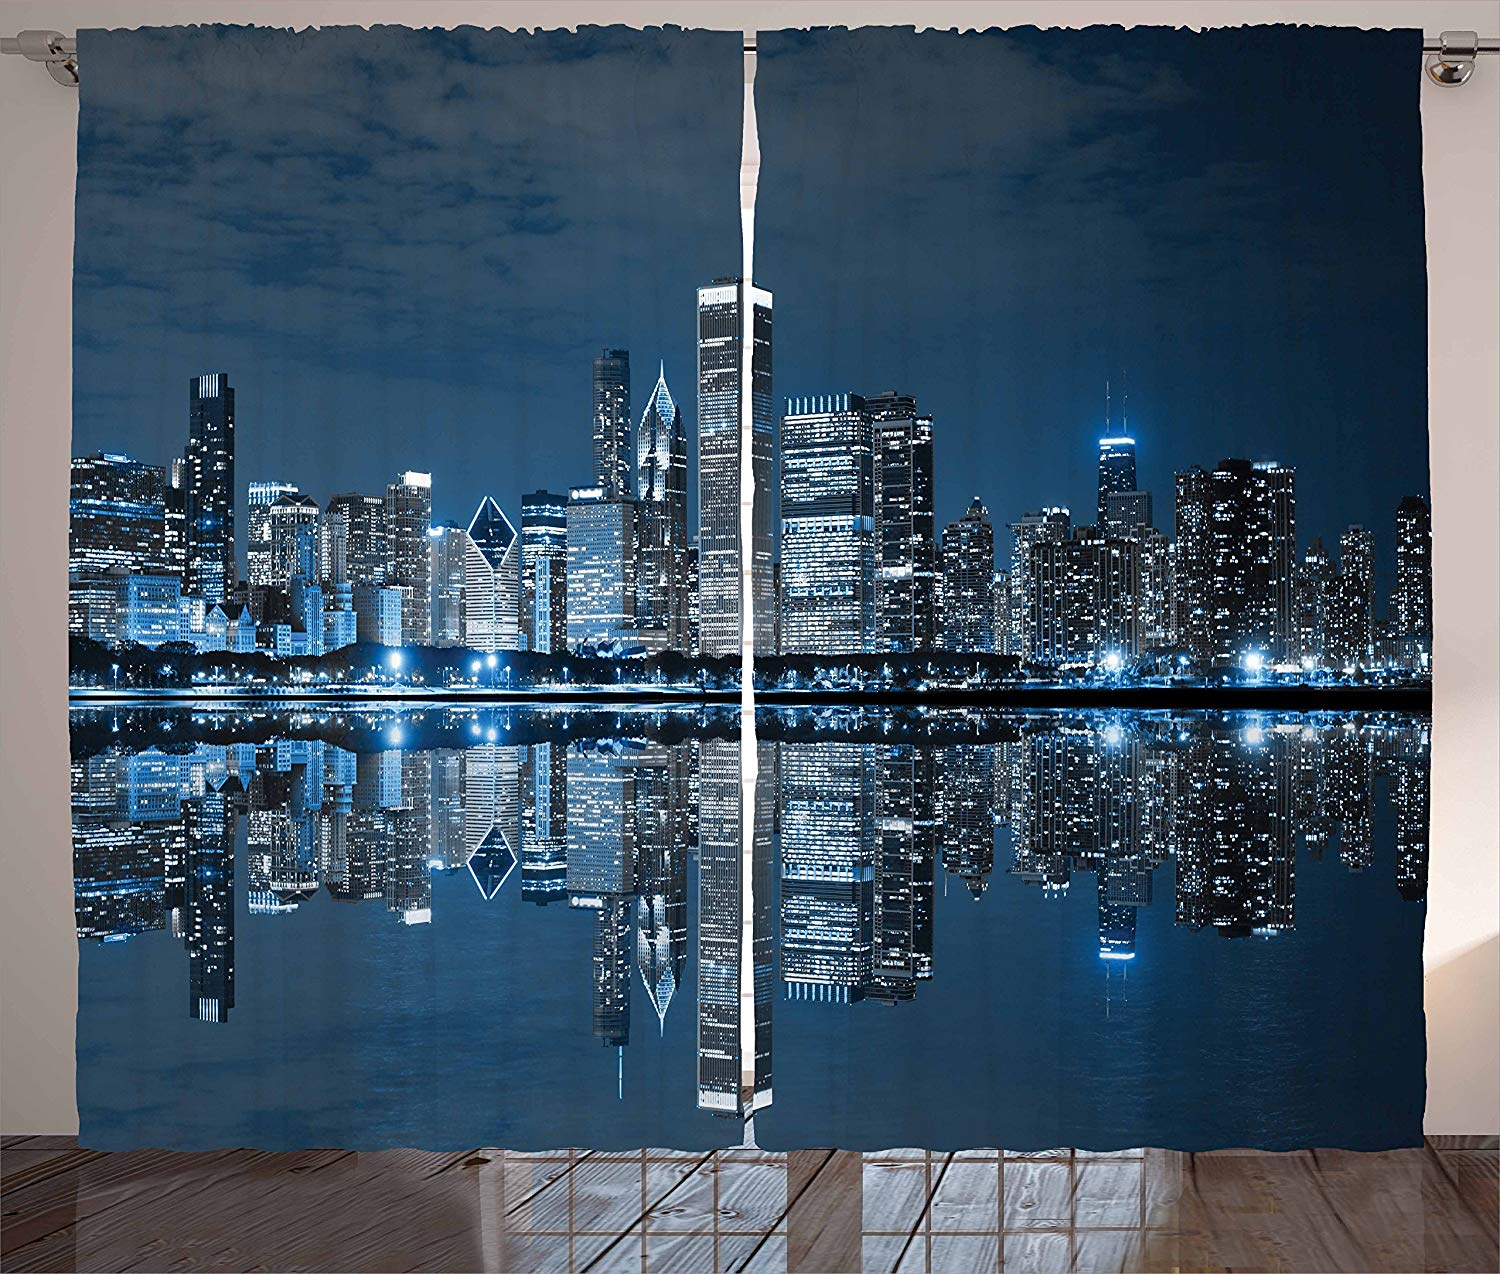 Chicago Skyline Curtains Sleeping City Dramatic Urban Resting Popular American Lake Picture Living Room Bedroom Window Drapes